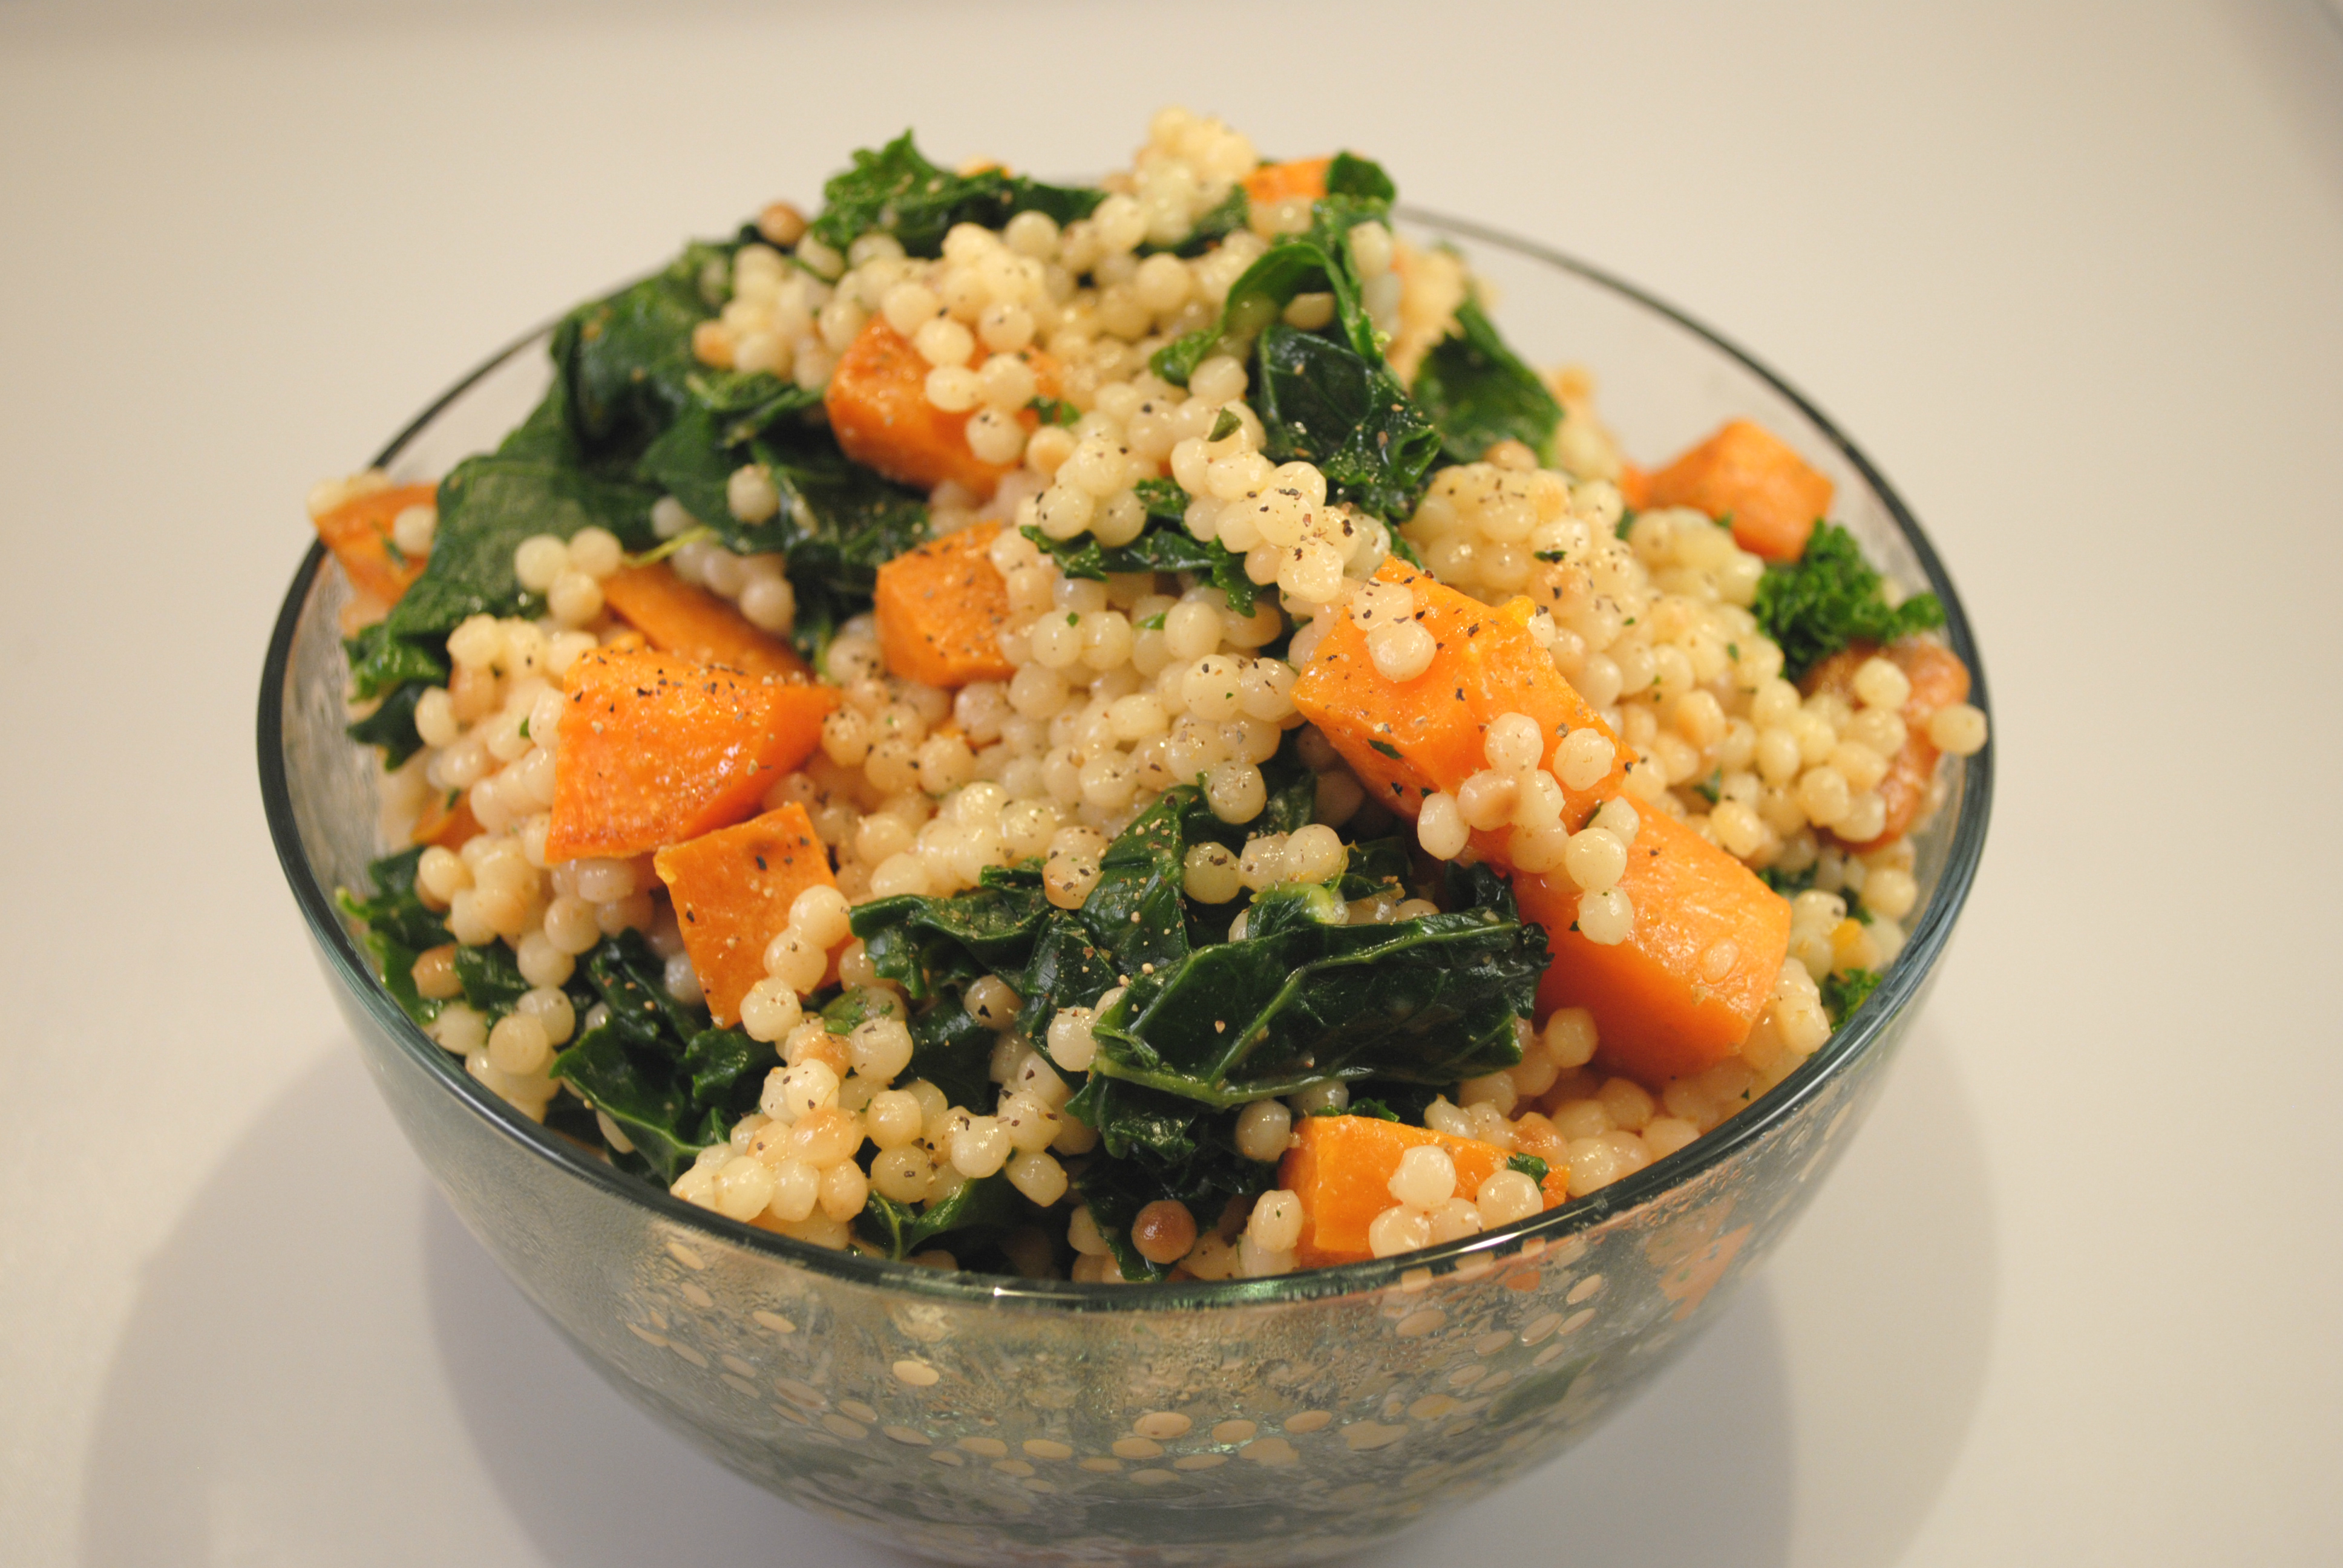 Lemon Couscous with Sweet Potatoes and Kale